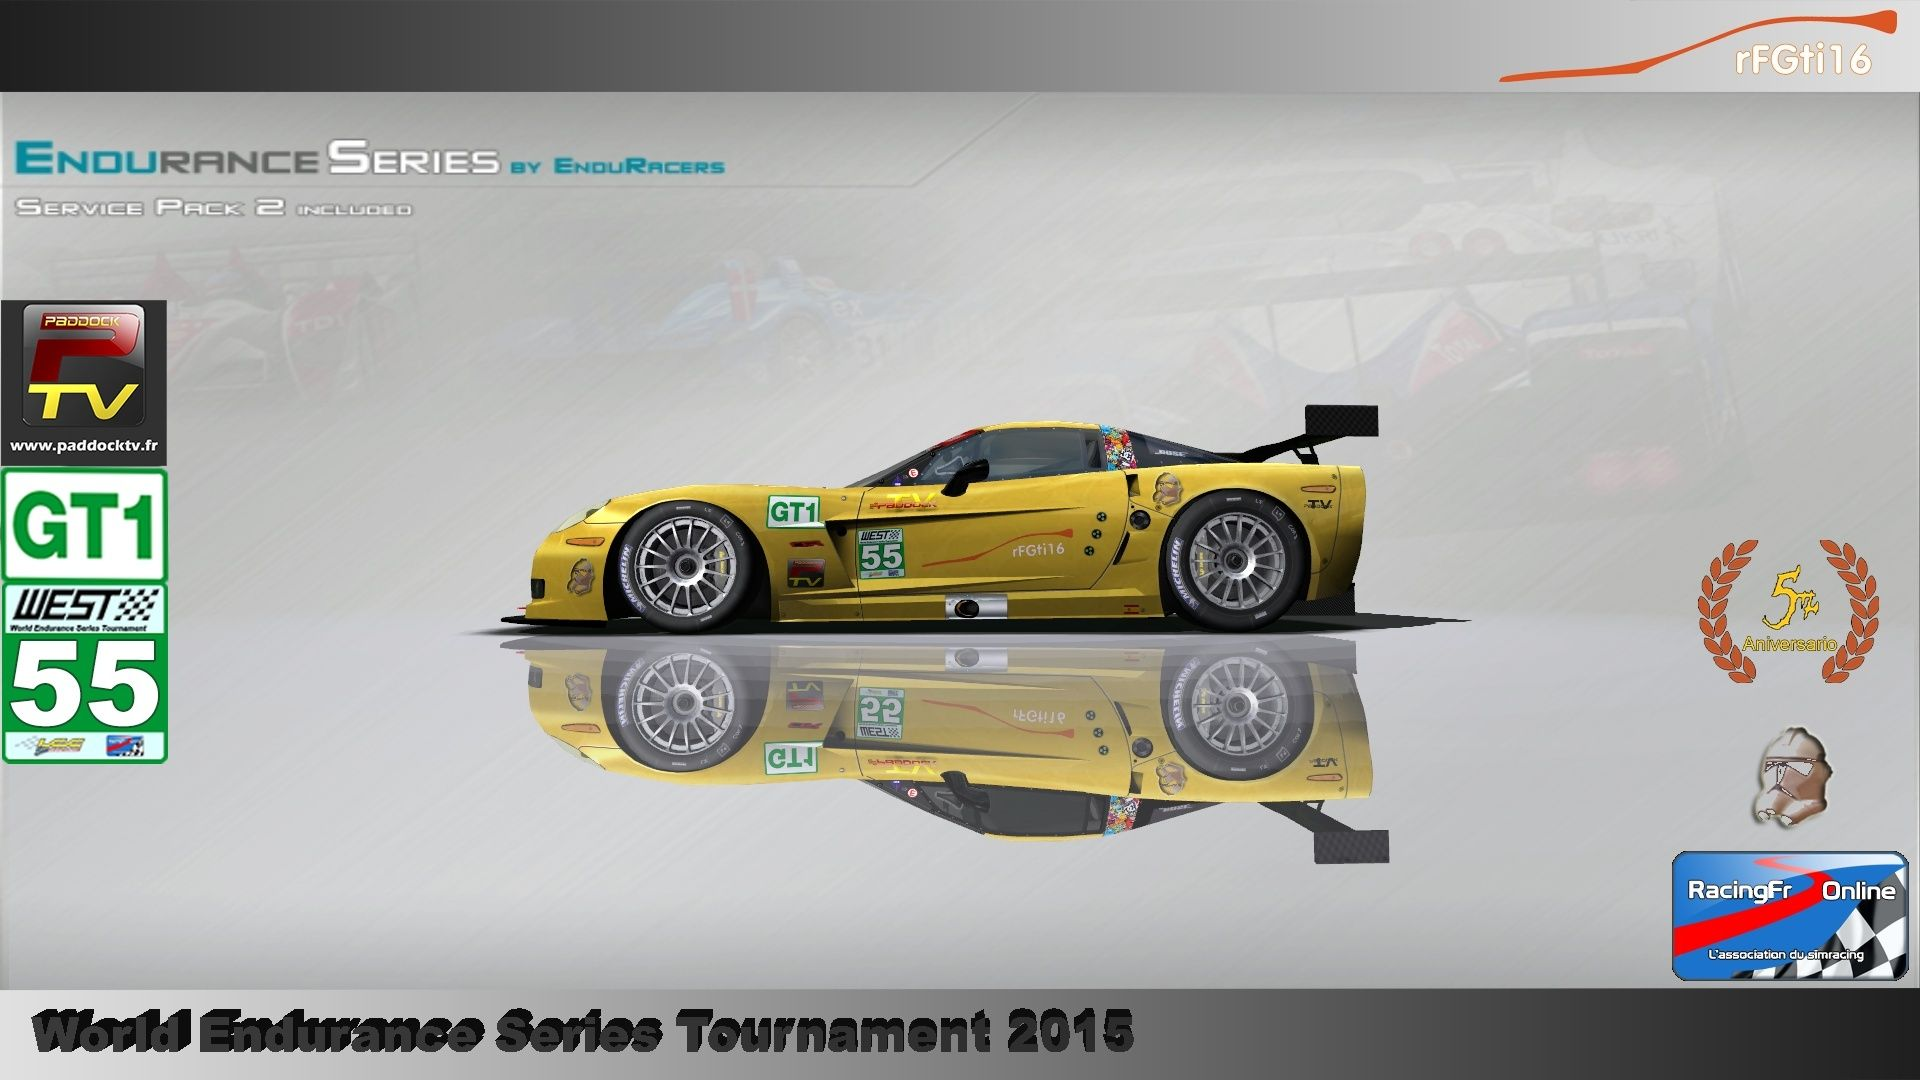 WEST 2015 Endurance Series championship P2/GT1 00310